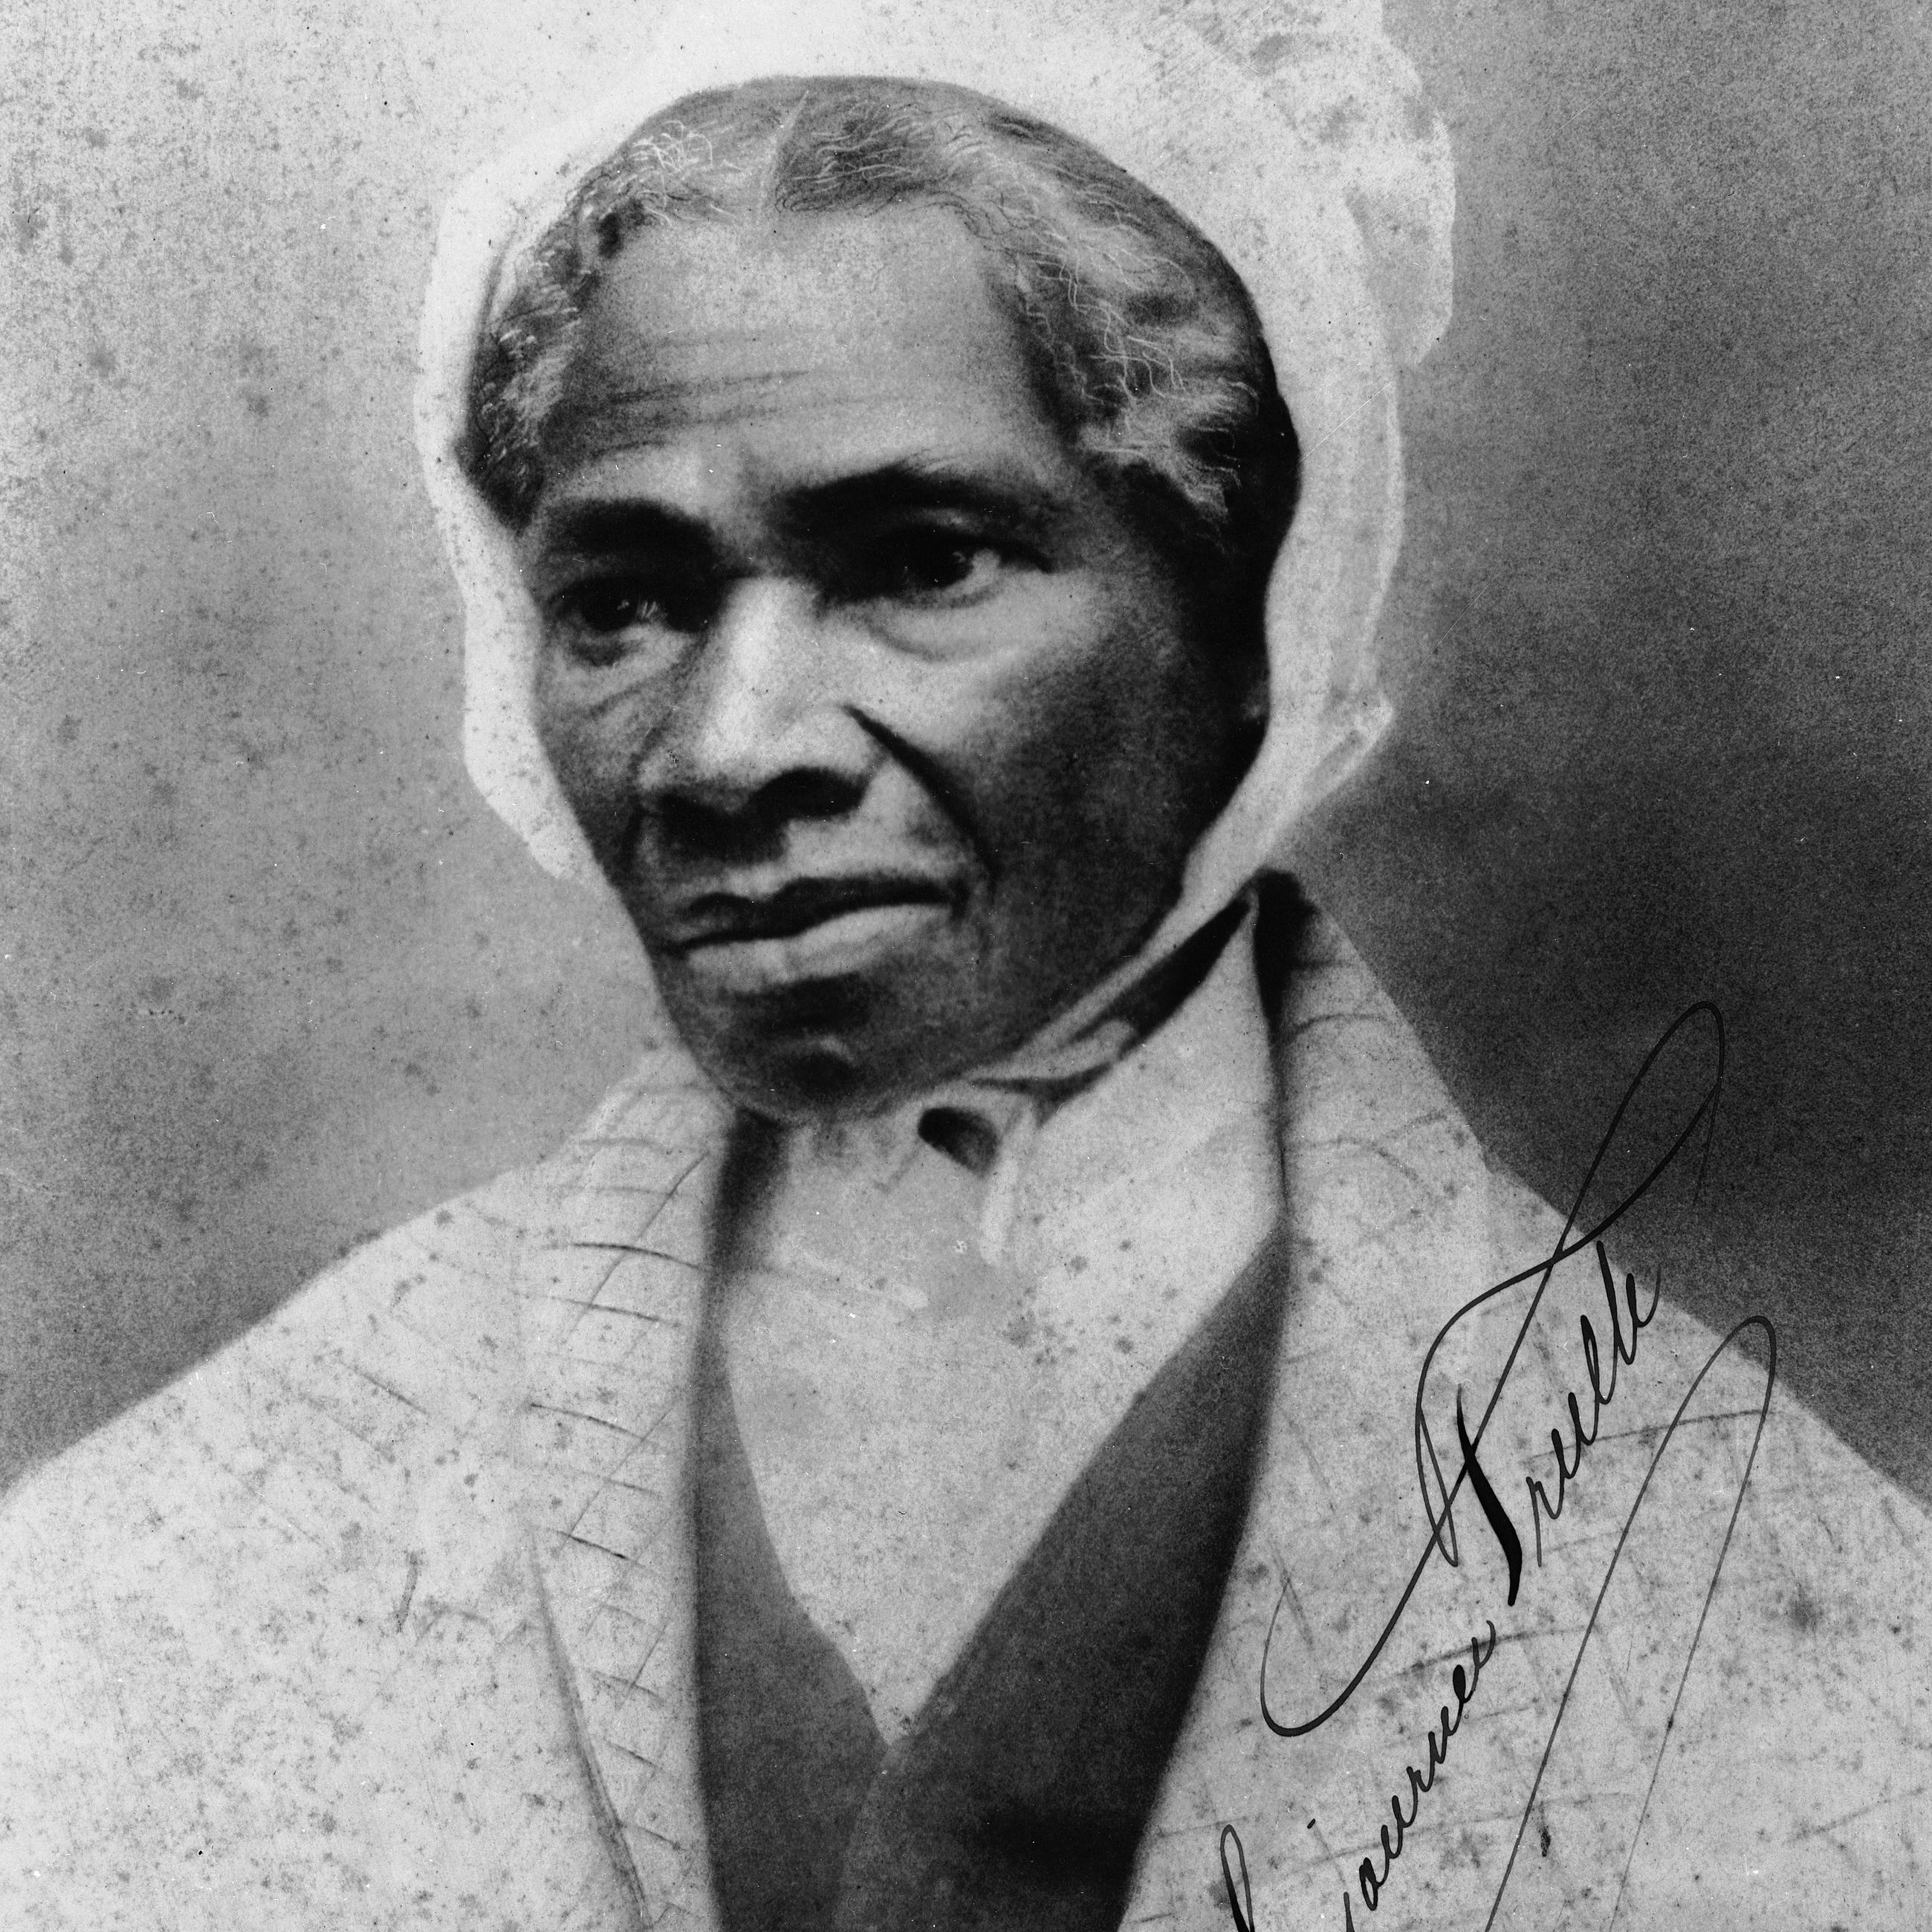 a biography of sojourner truth an african america abolitionist and womens right activist Sojourner truth biography african american abolitionist sojourner truth was an uneducated former slave who actively opposed slavery.